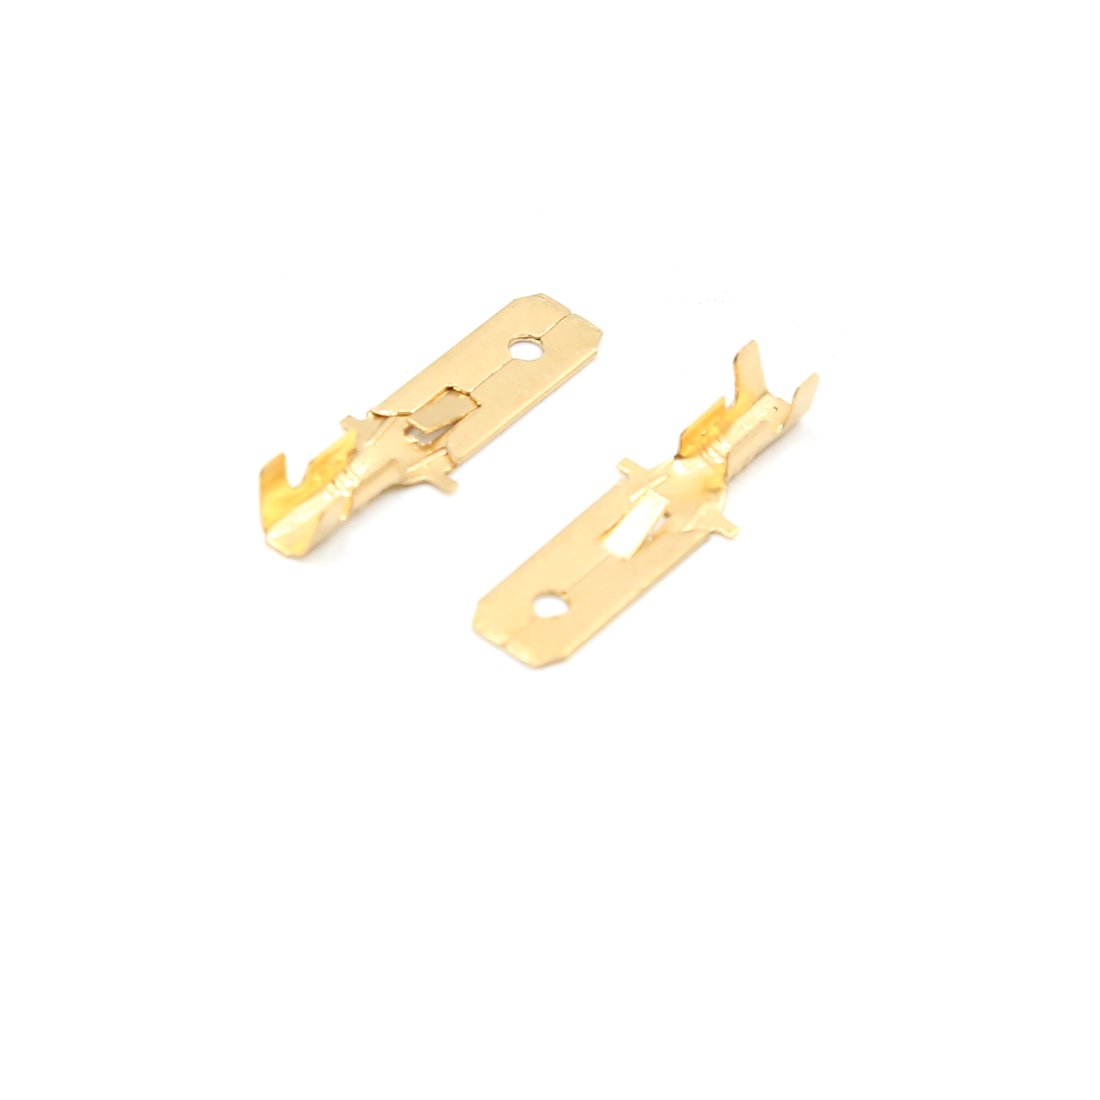 uxcell 200Pcs Gold Tone Male Spade Crimp Terminal Wiring Connector for Car Home